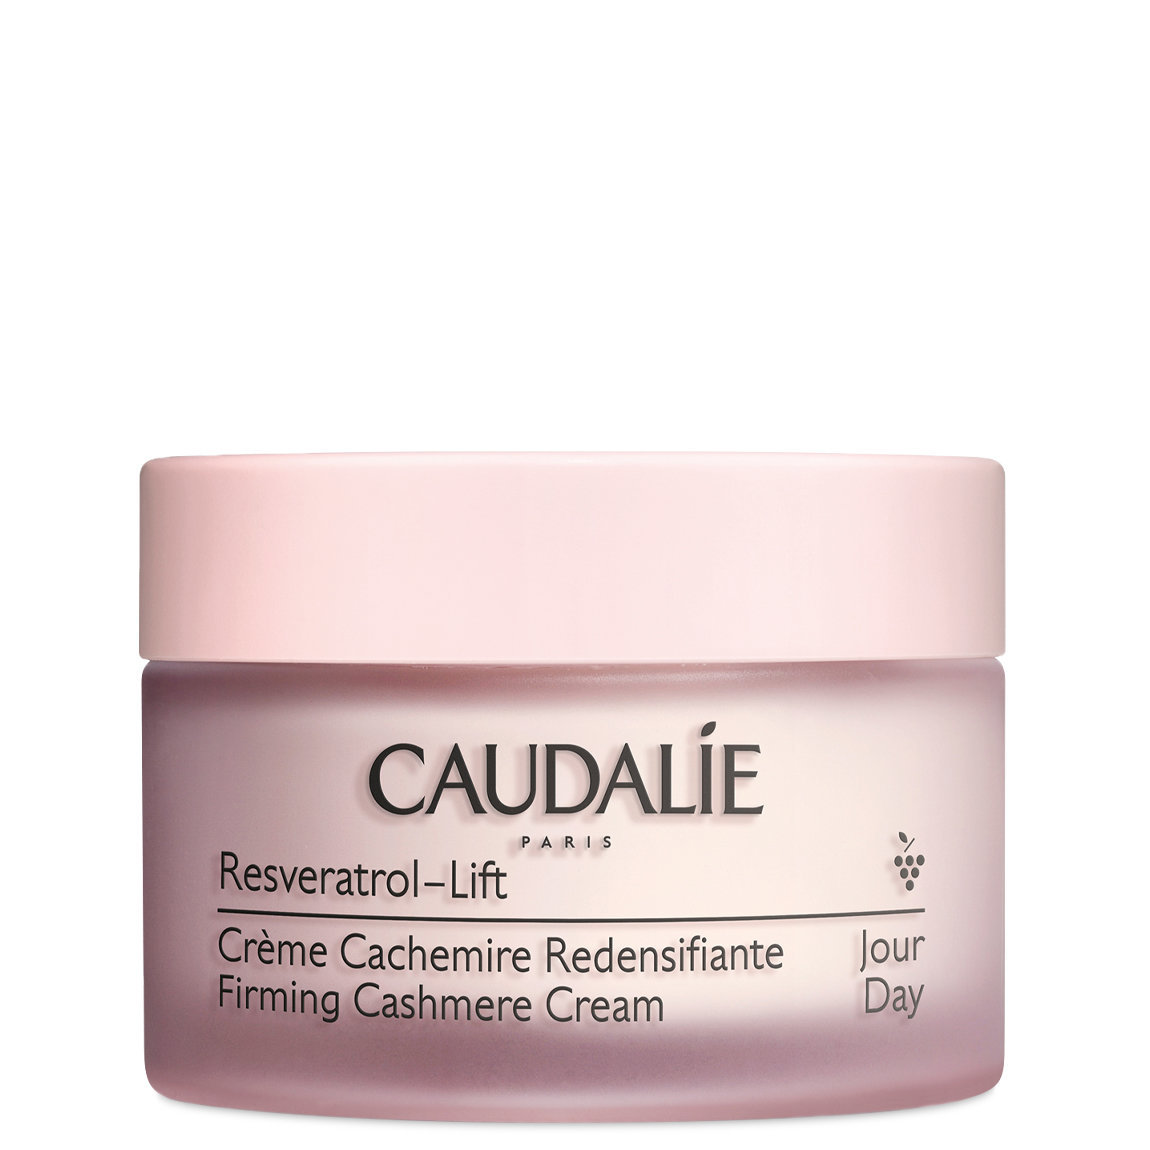 Caudalie Resveratrol-Lift Firming Cashmere Cream alternative view 1 - product swatch.